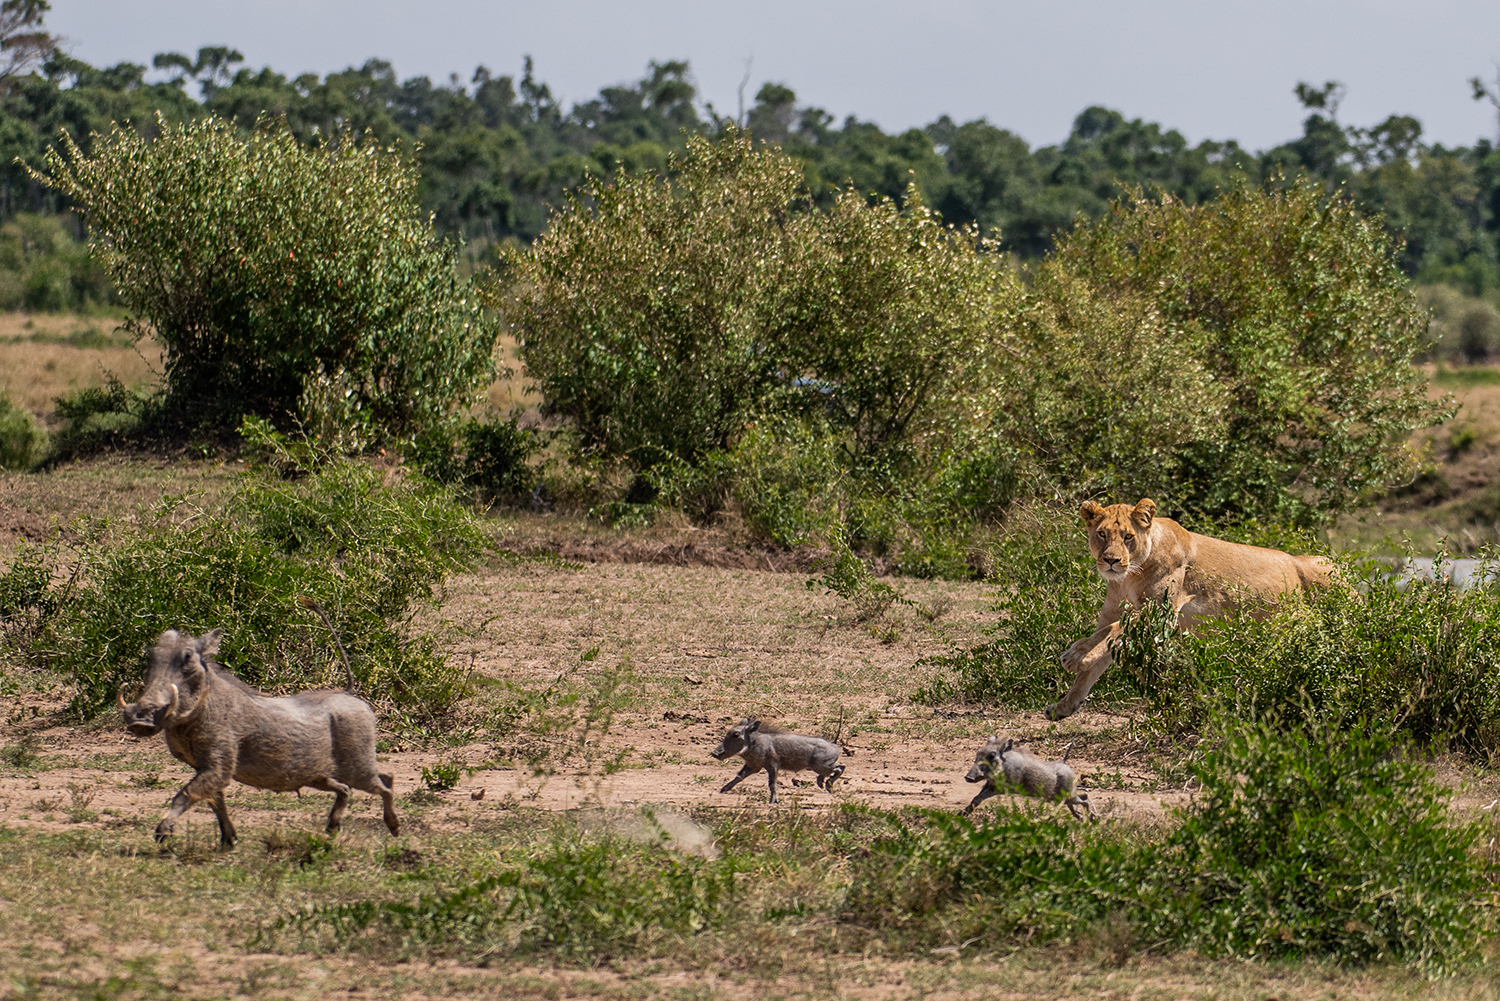 Lioness and warthog